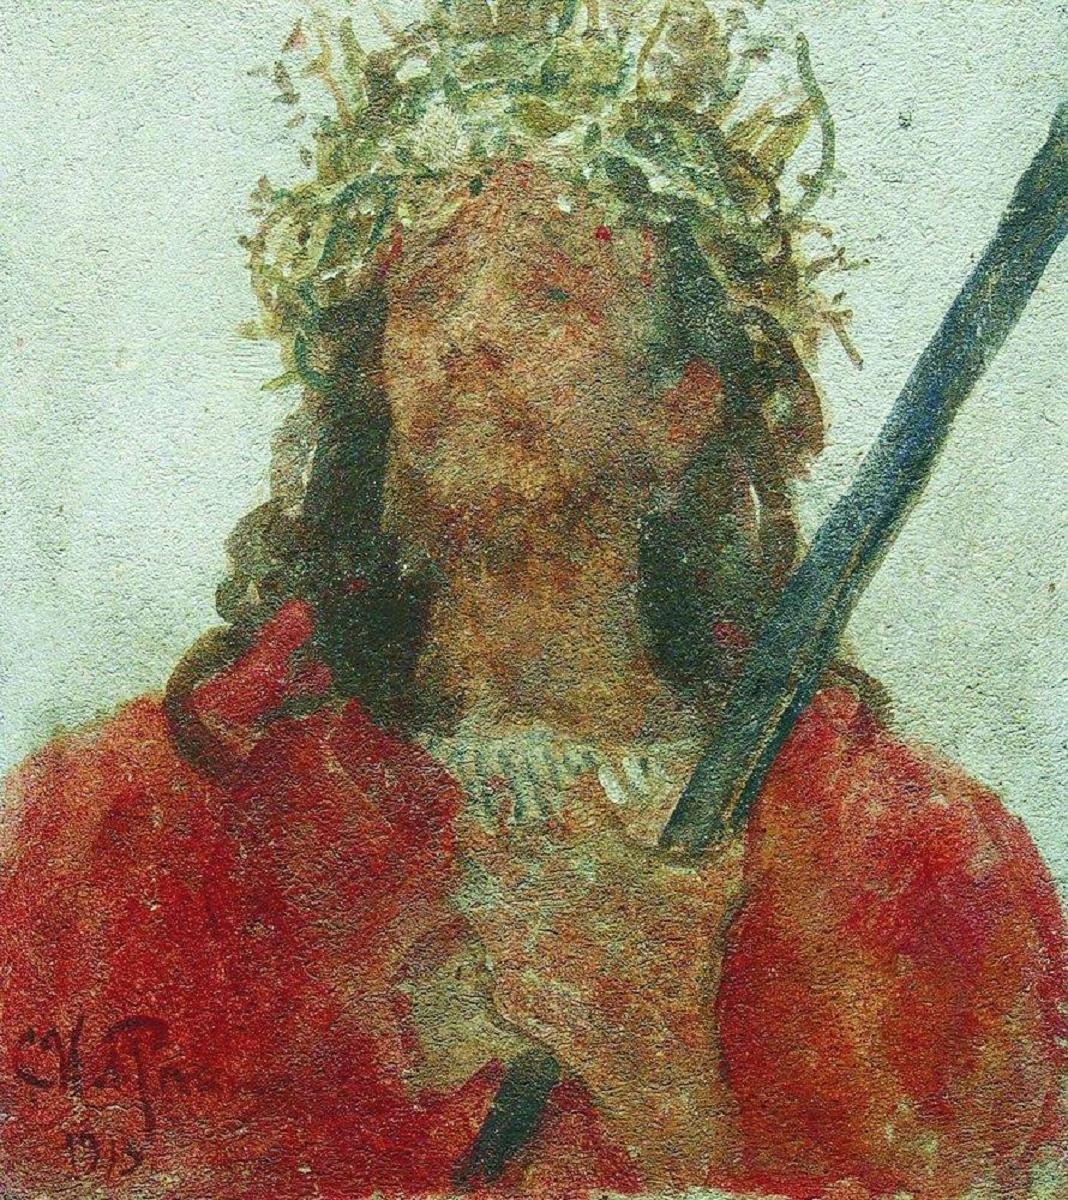 ilya-repin-christ-wearing-the-crown-of-thorns-1913